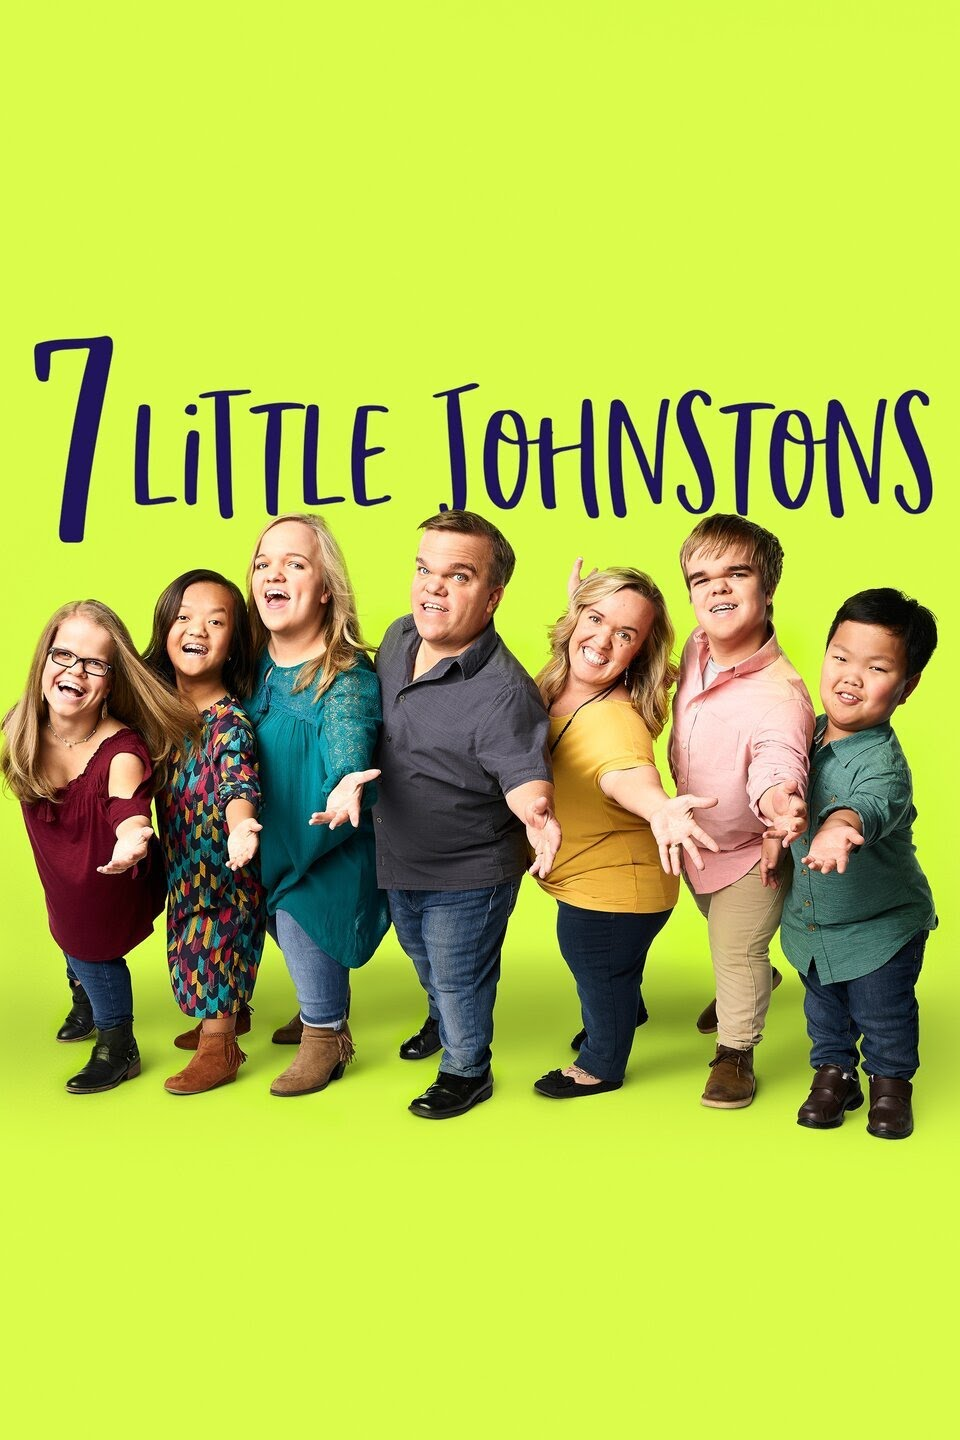 7 Little Johnstons - Season 8 Episode 5 - Chasing Waterfalls